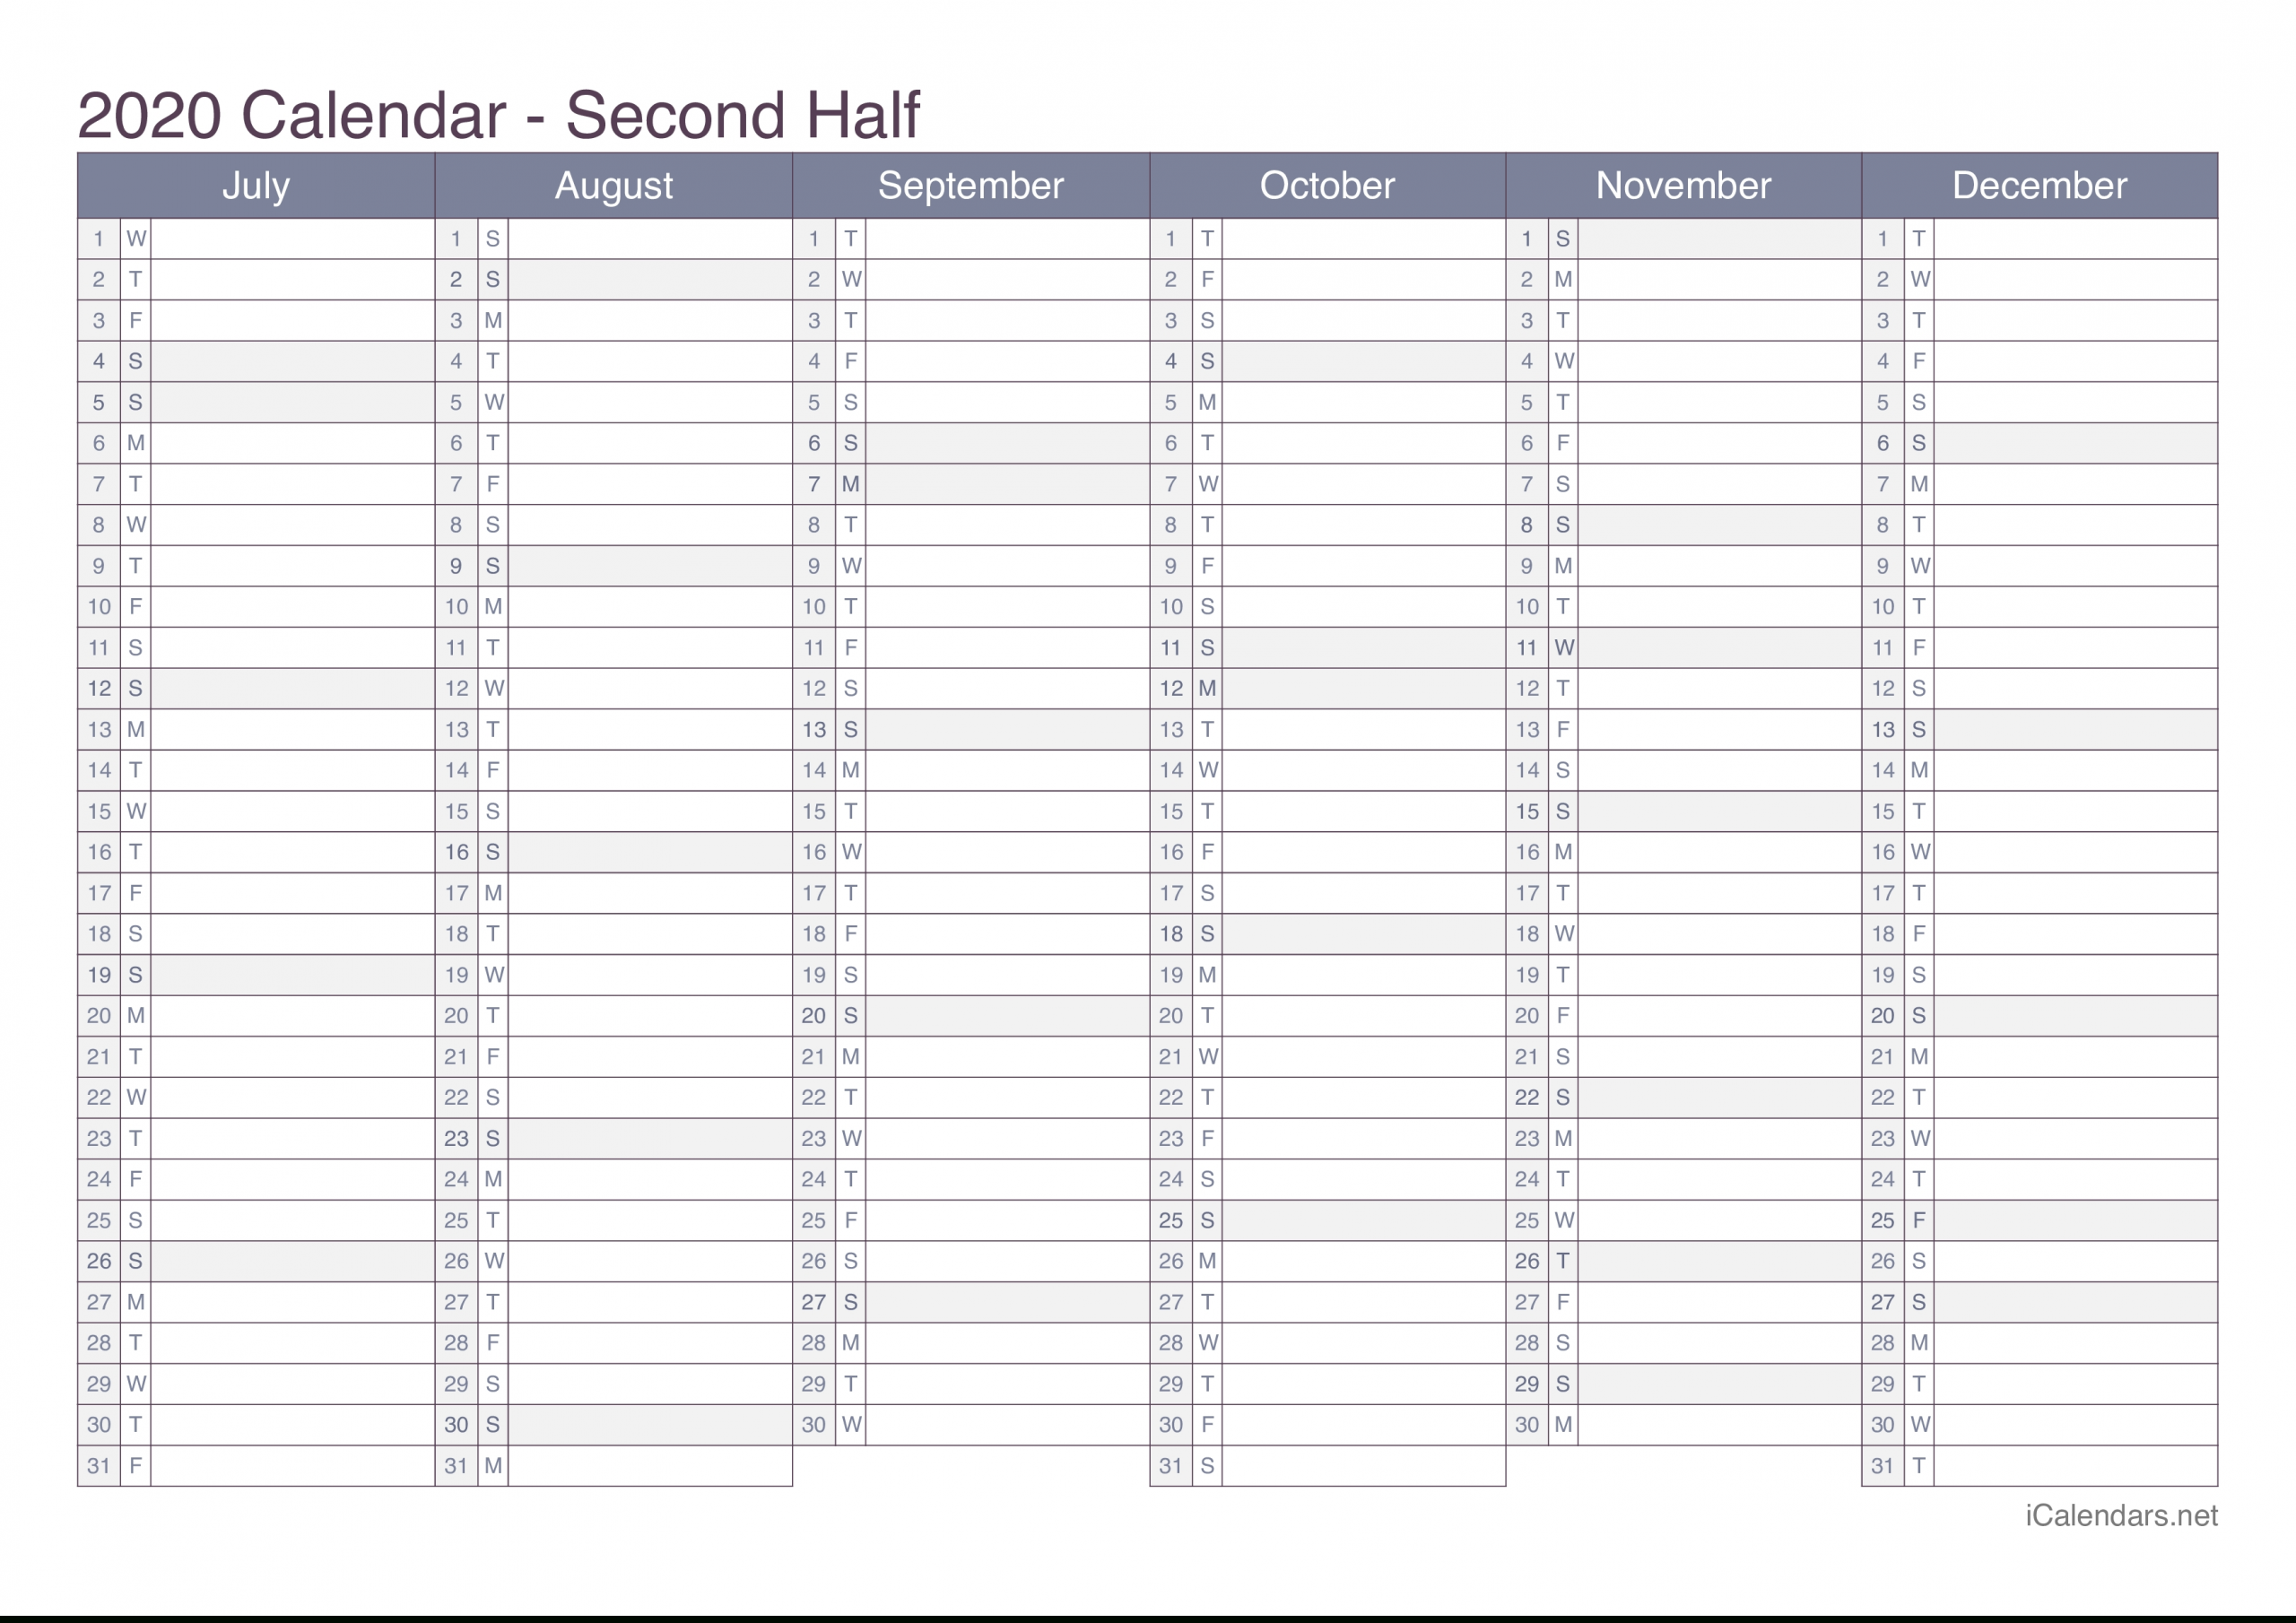 2020 Printable Calendar - Pdf Or Excel - Icalendars within 2020 Calendar To Fill In